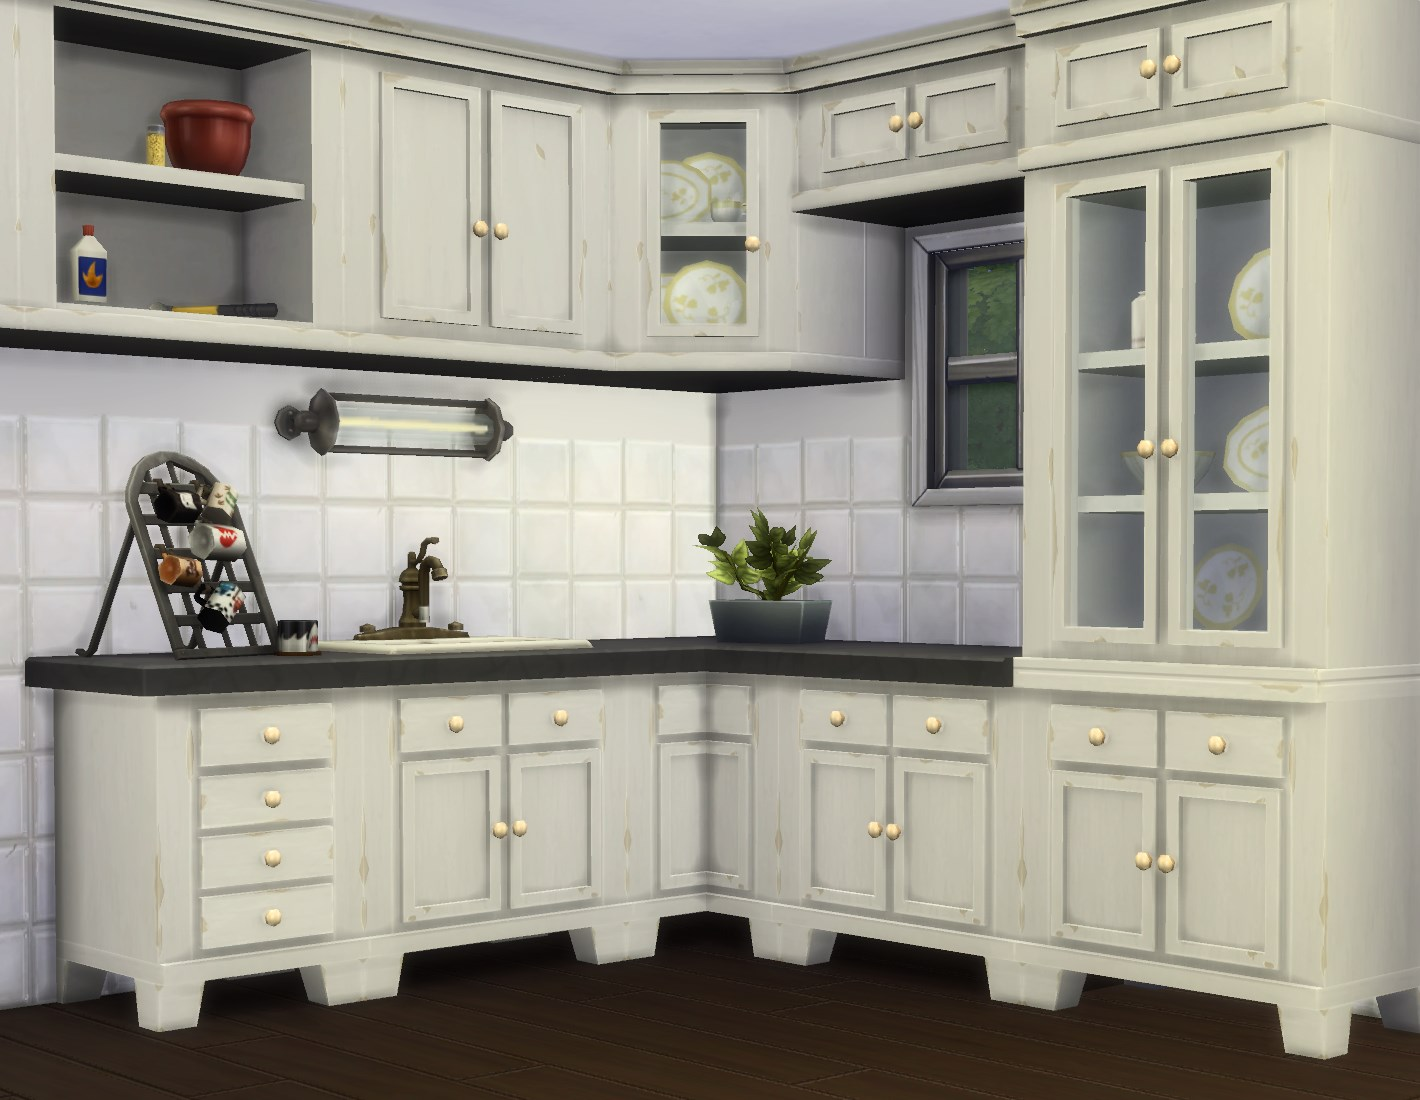 My sims 4 blog country kitchen and cupboard by plasticbox for Cc kitchen cabinets